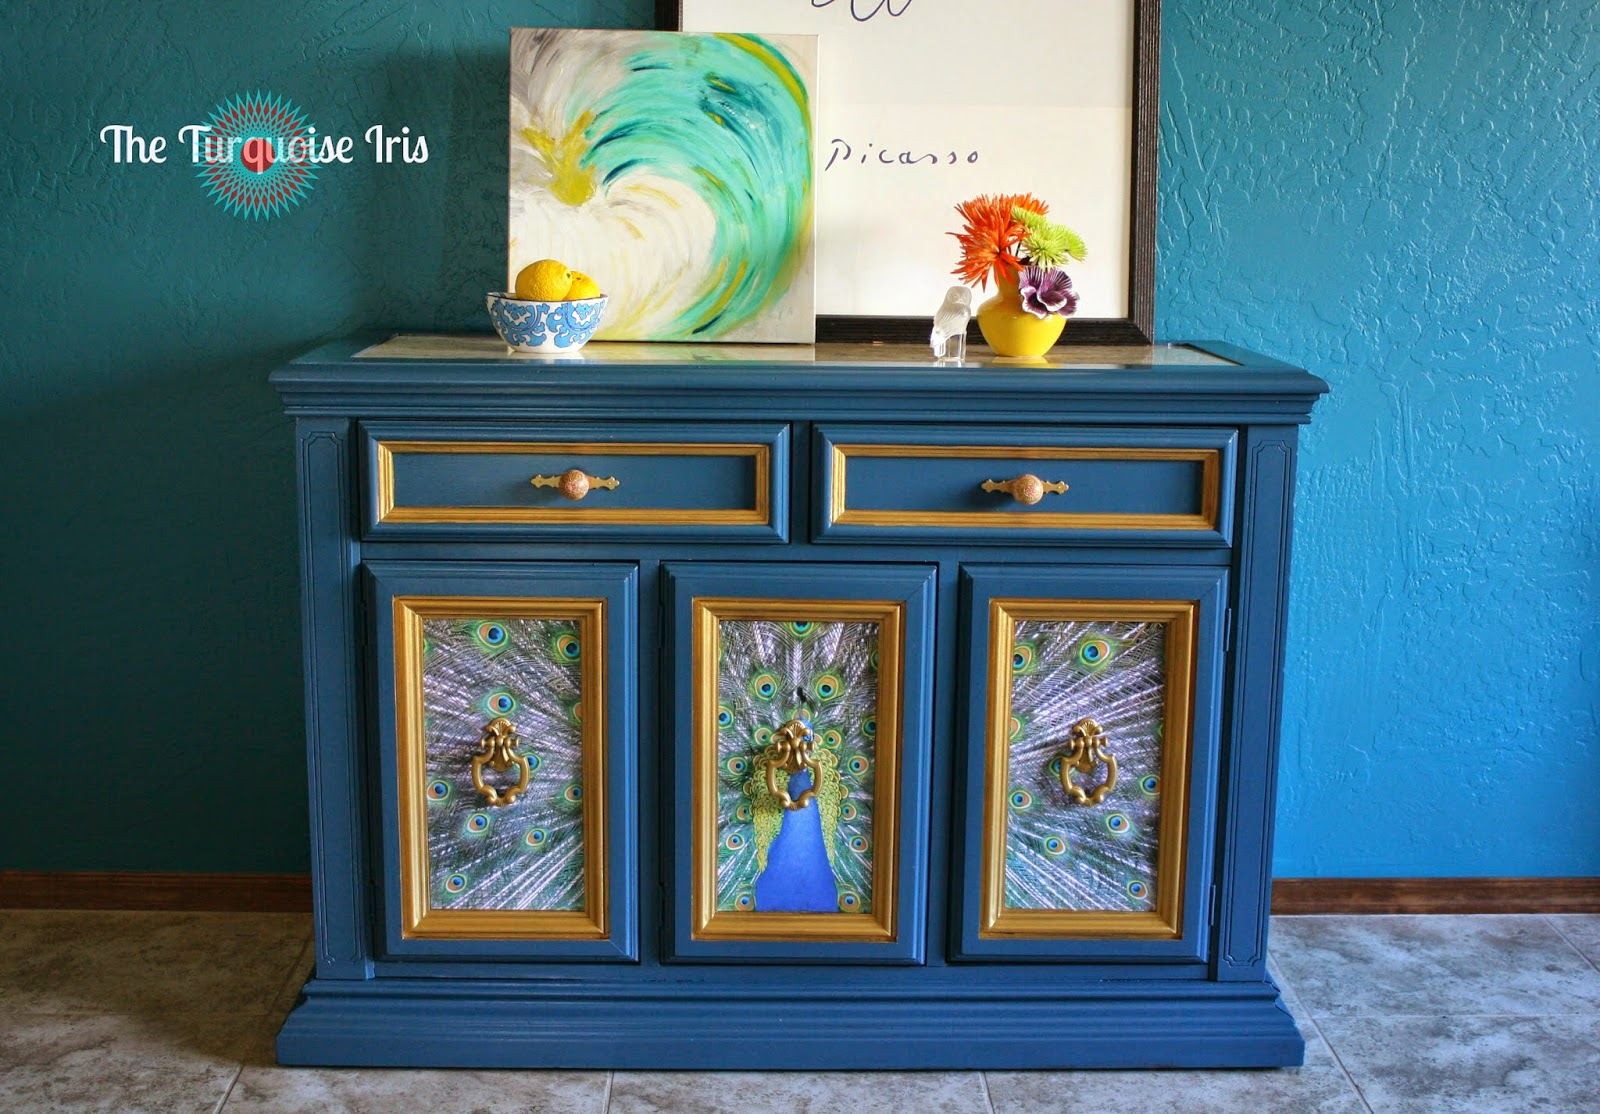 The Royal Blue Peacock Buffet | The Turquoise Iris